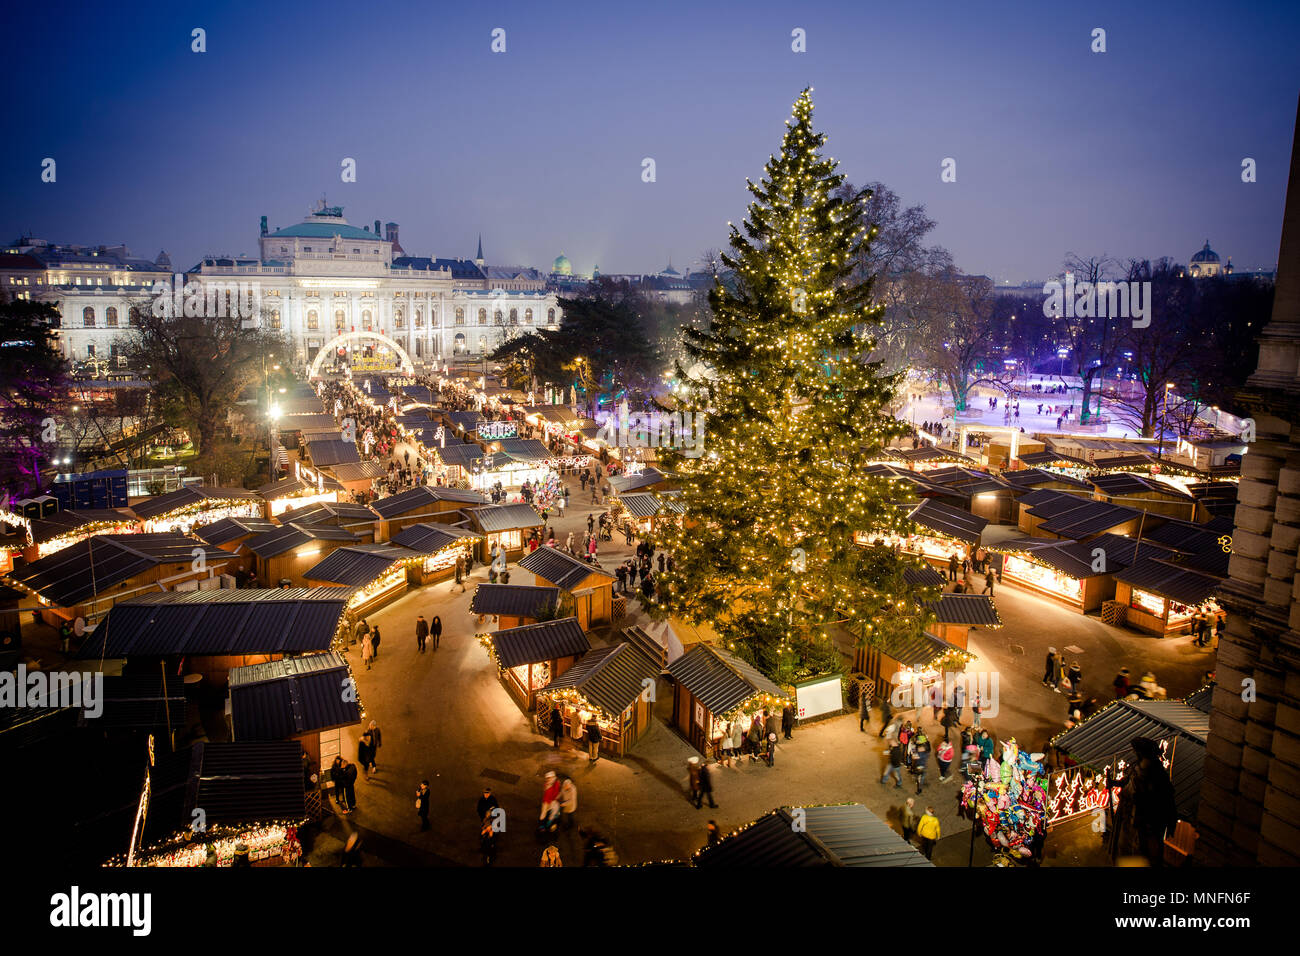 Vienna traditional Christmas Market 2016, aerial view at blue hour (sunset). Wien, Austria, Europe. - Stock Image